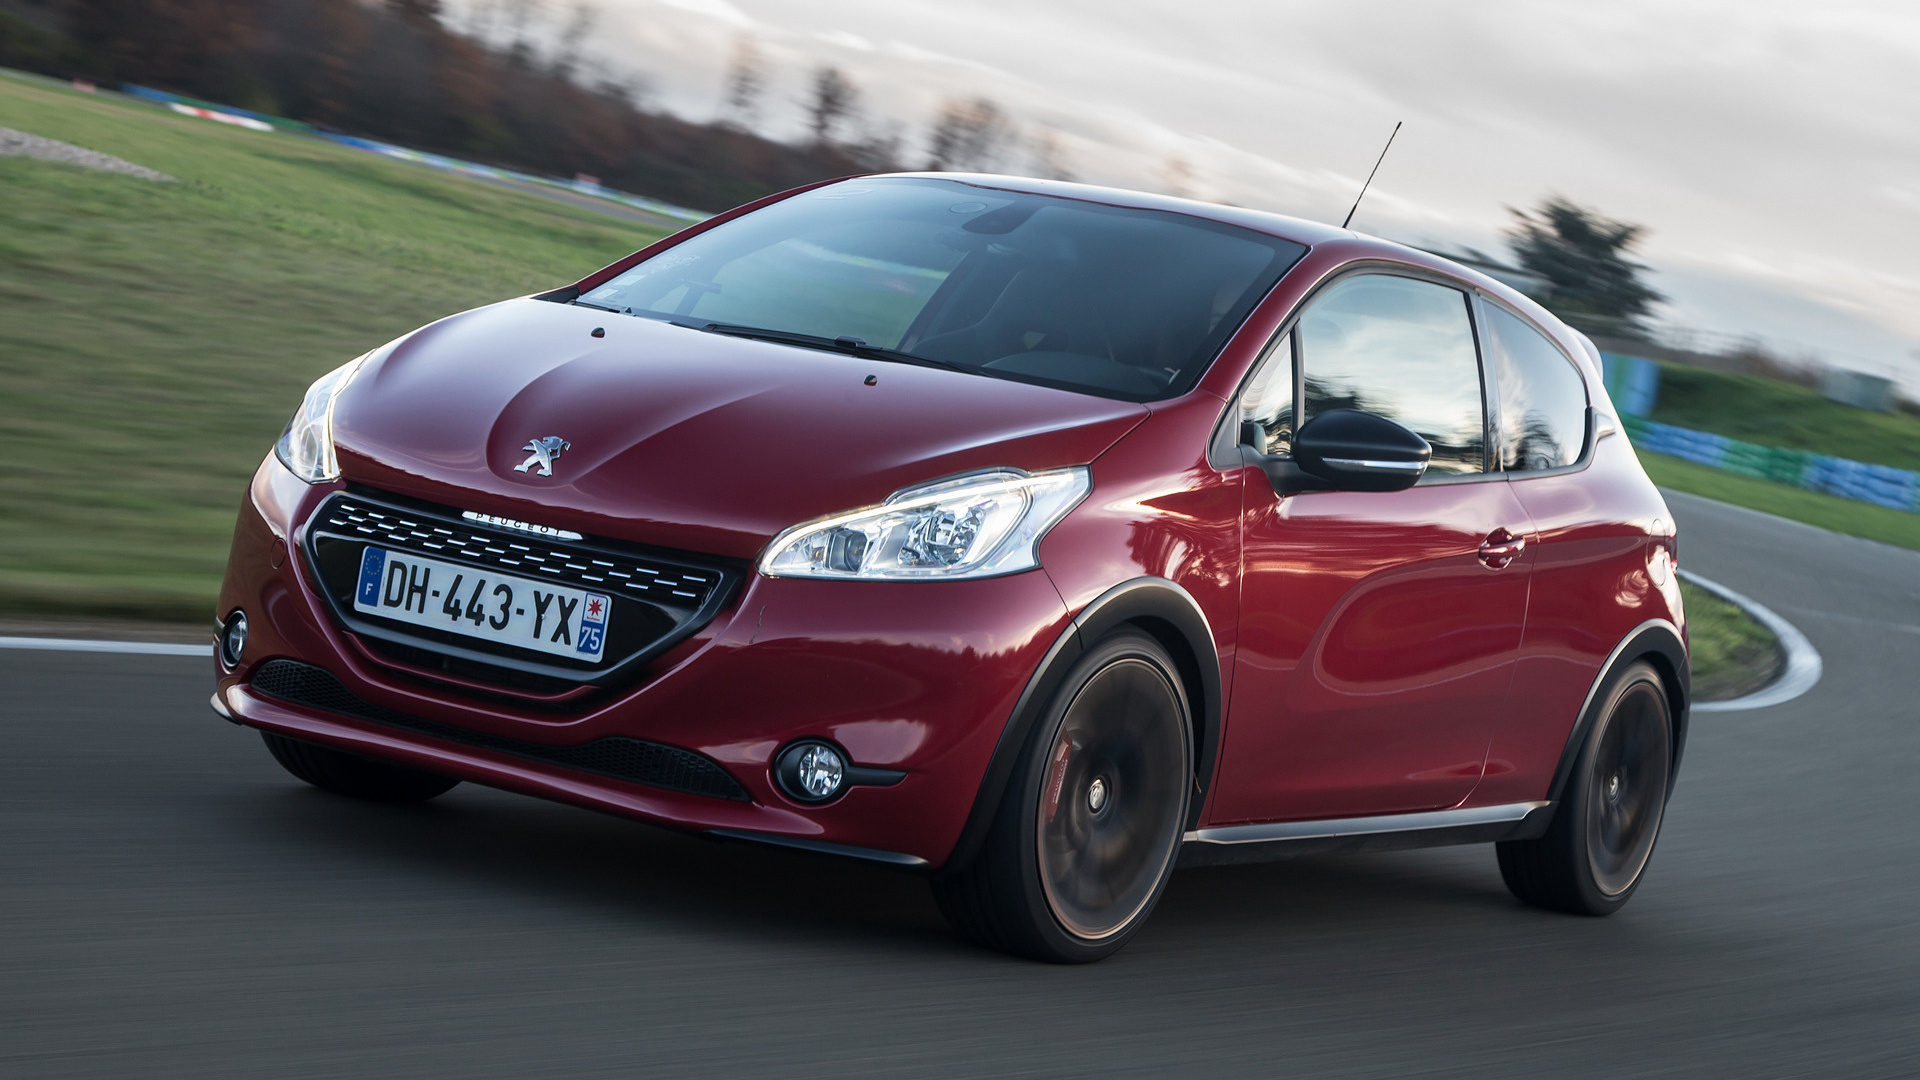 peugeot 208 gti 30th anniversary 2014 wallpapers and hd. Black Bedroom Furniture Sets. Home Design Ideas